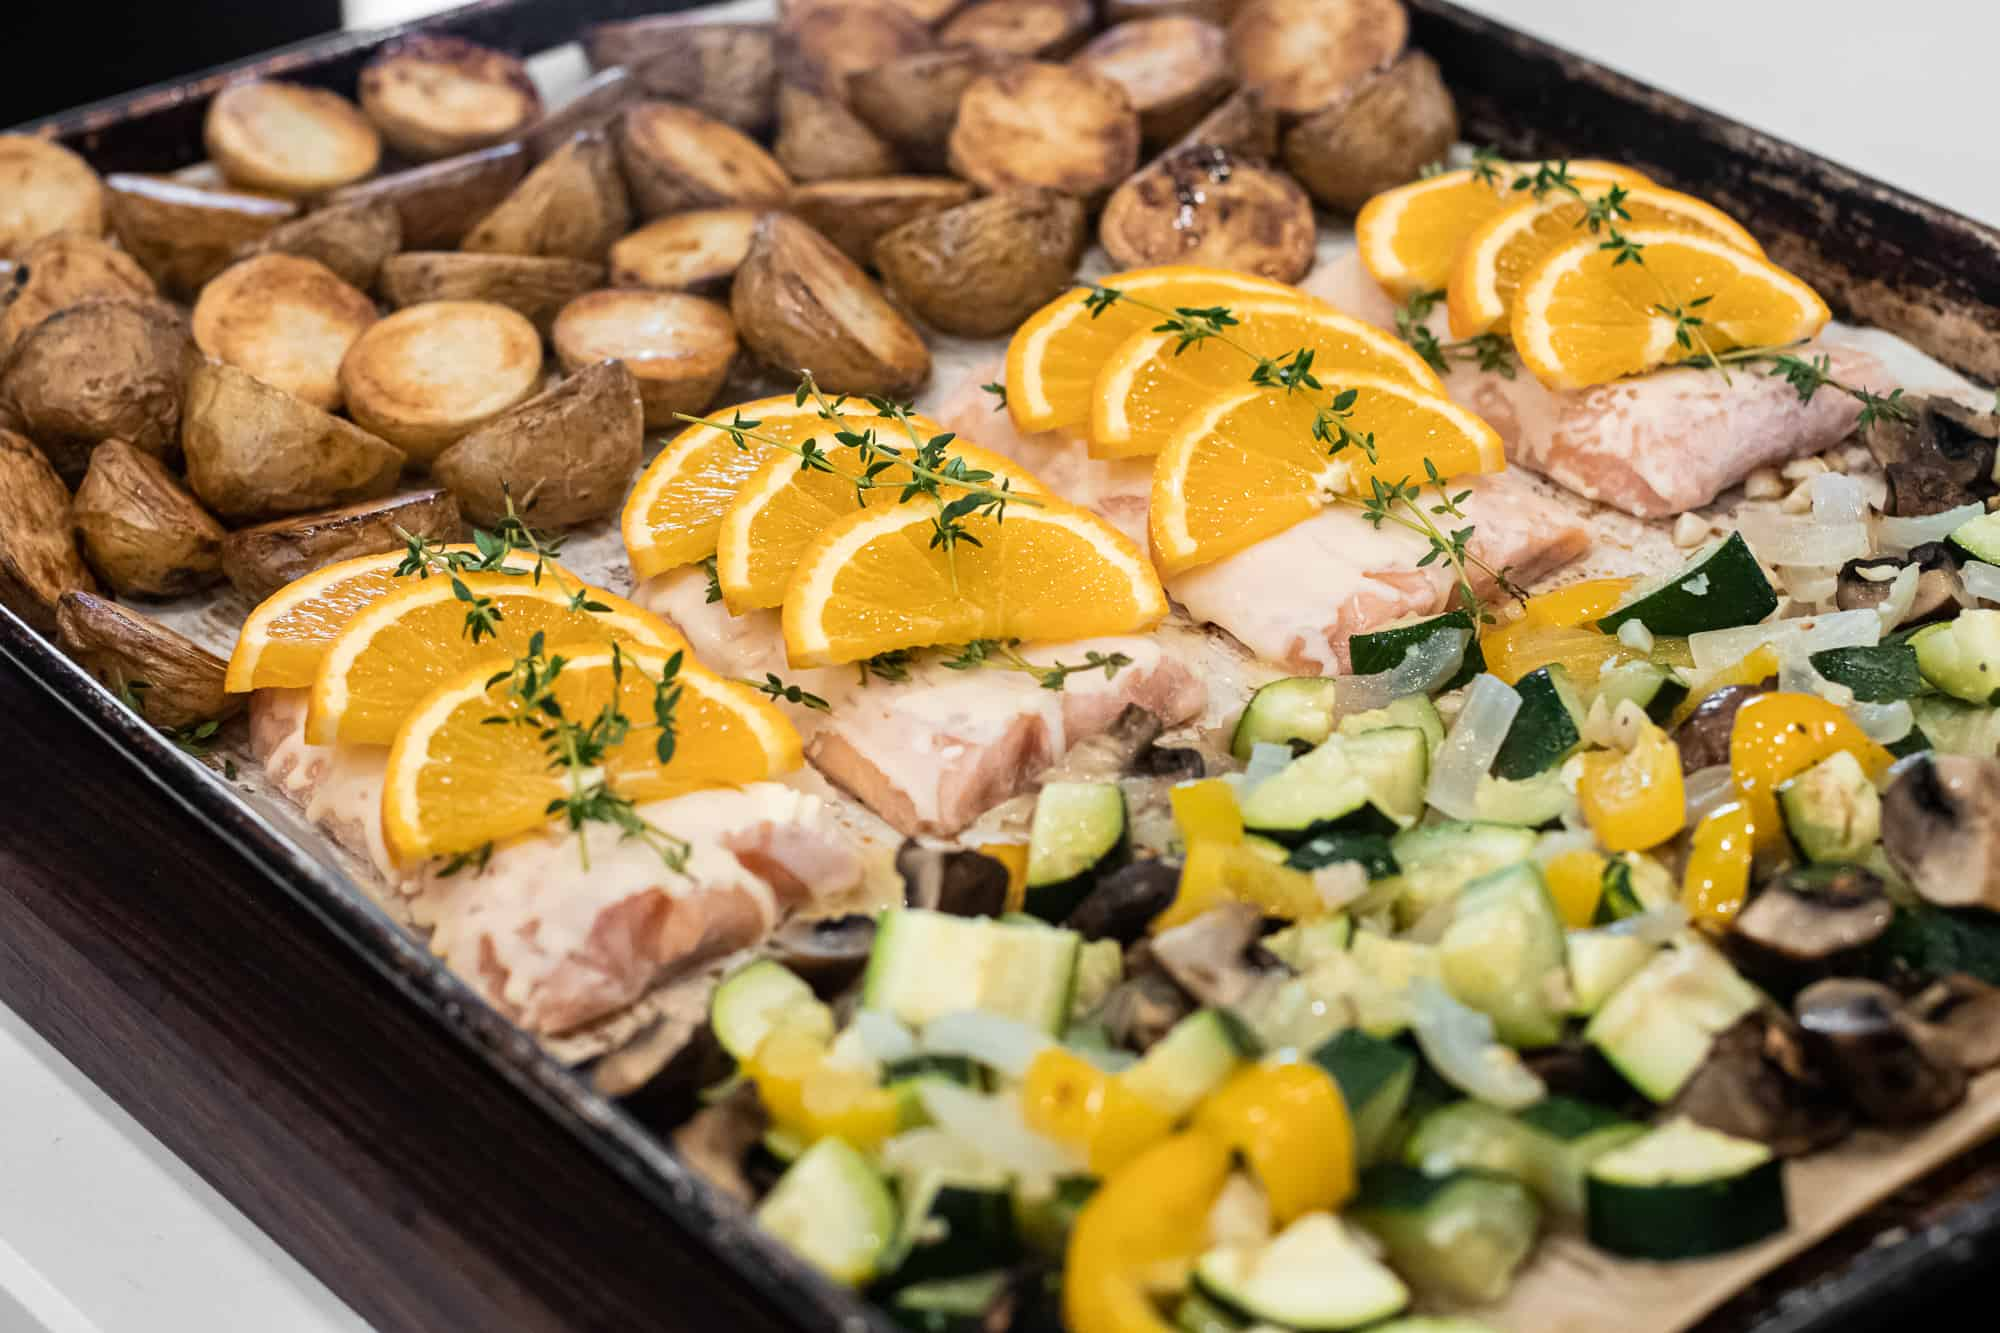 frozen salmon filet with fresh thyme sprigs and sliced oranges